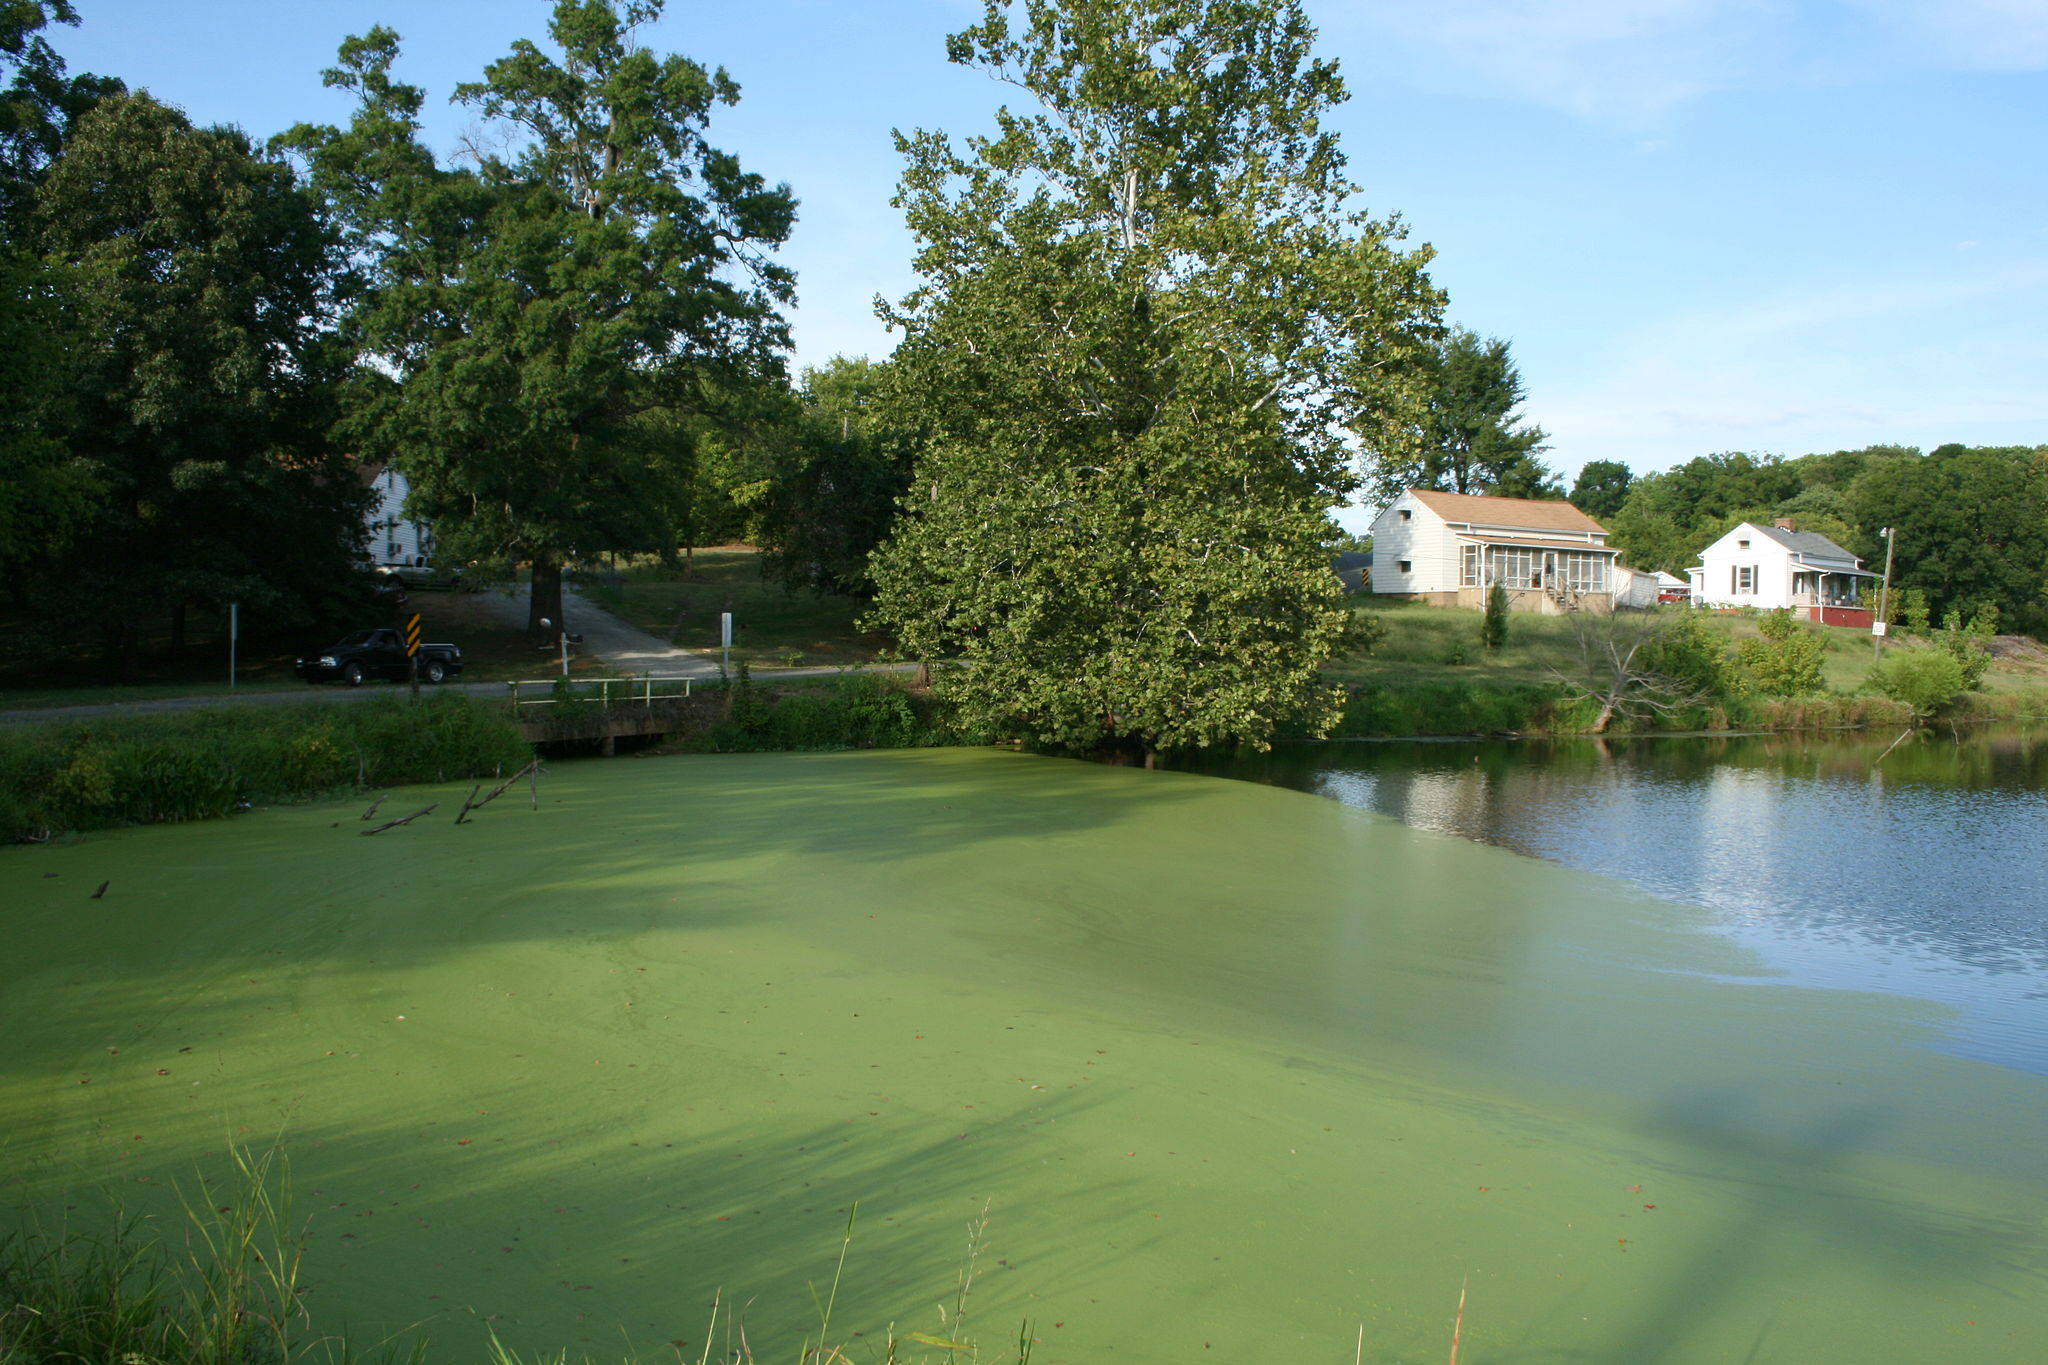 the effects of algae overgrowth